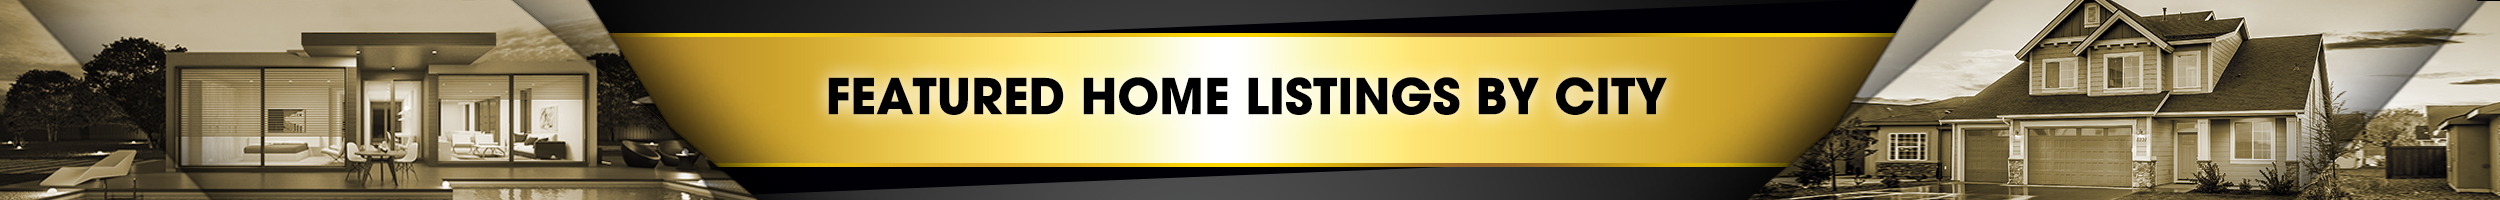 featured-home-listings-by-city